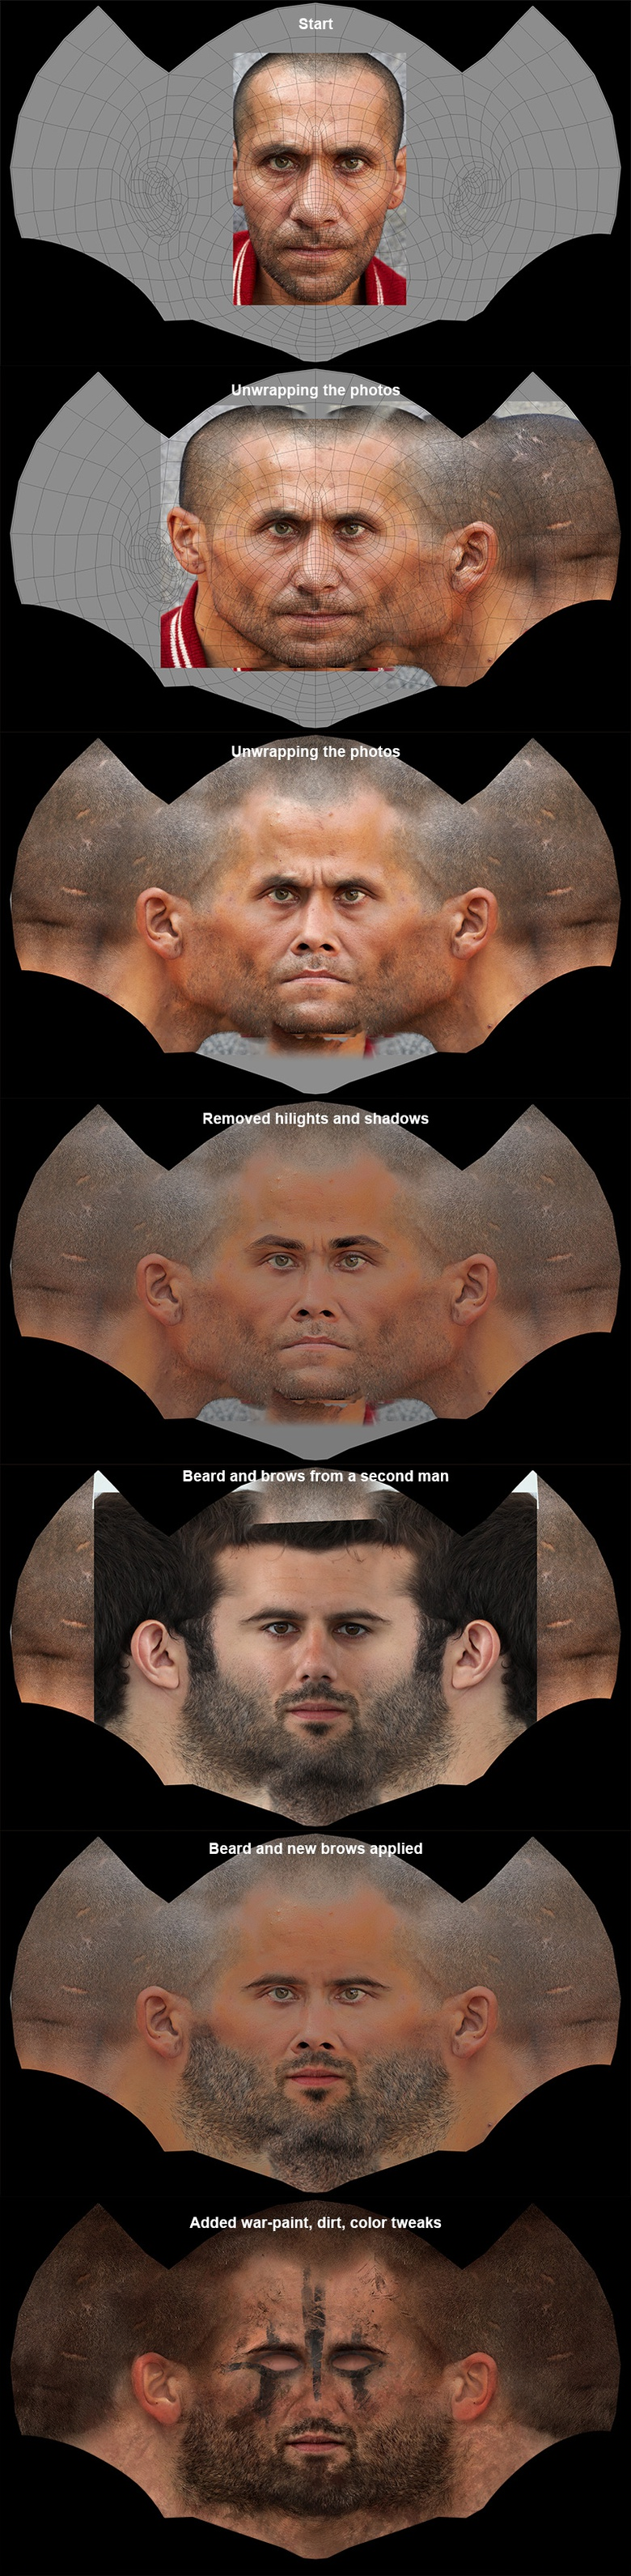 Unwrapping faces in Photoshop, ready to apply to the 3D model